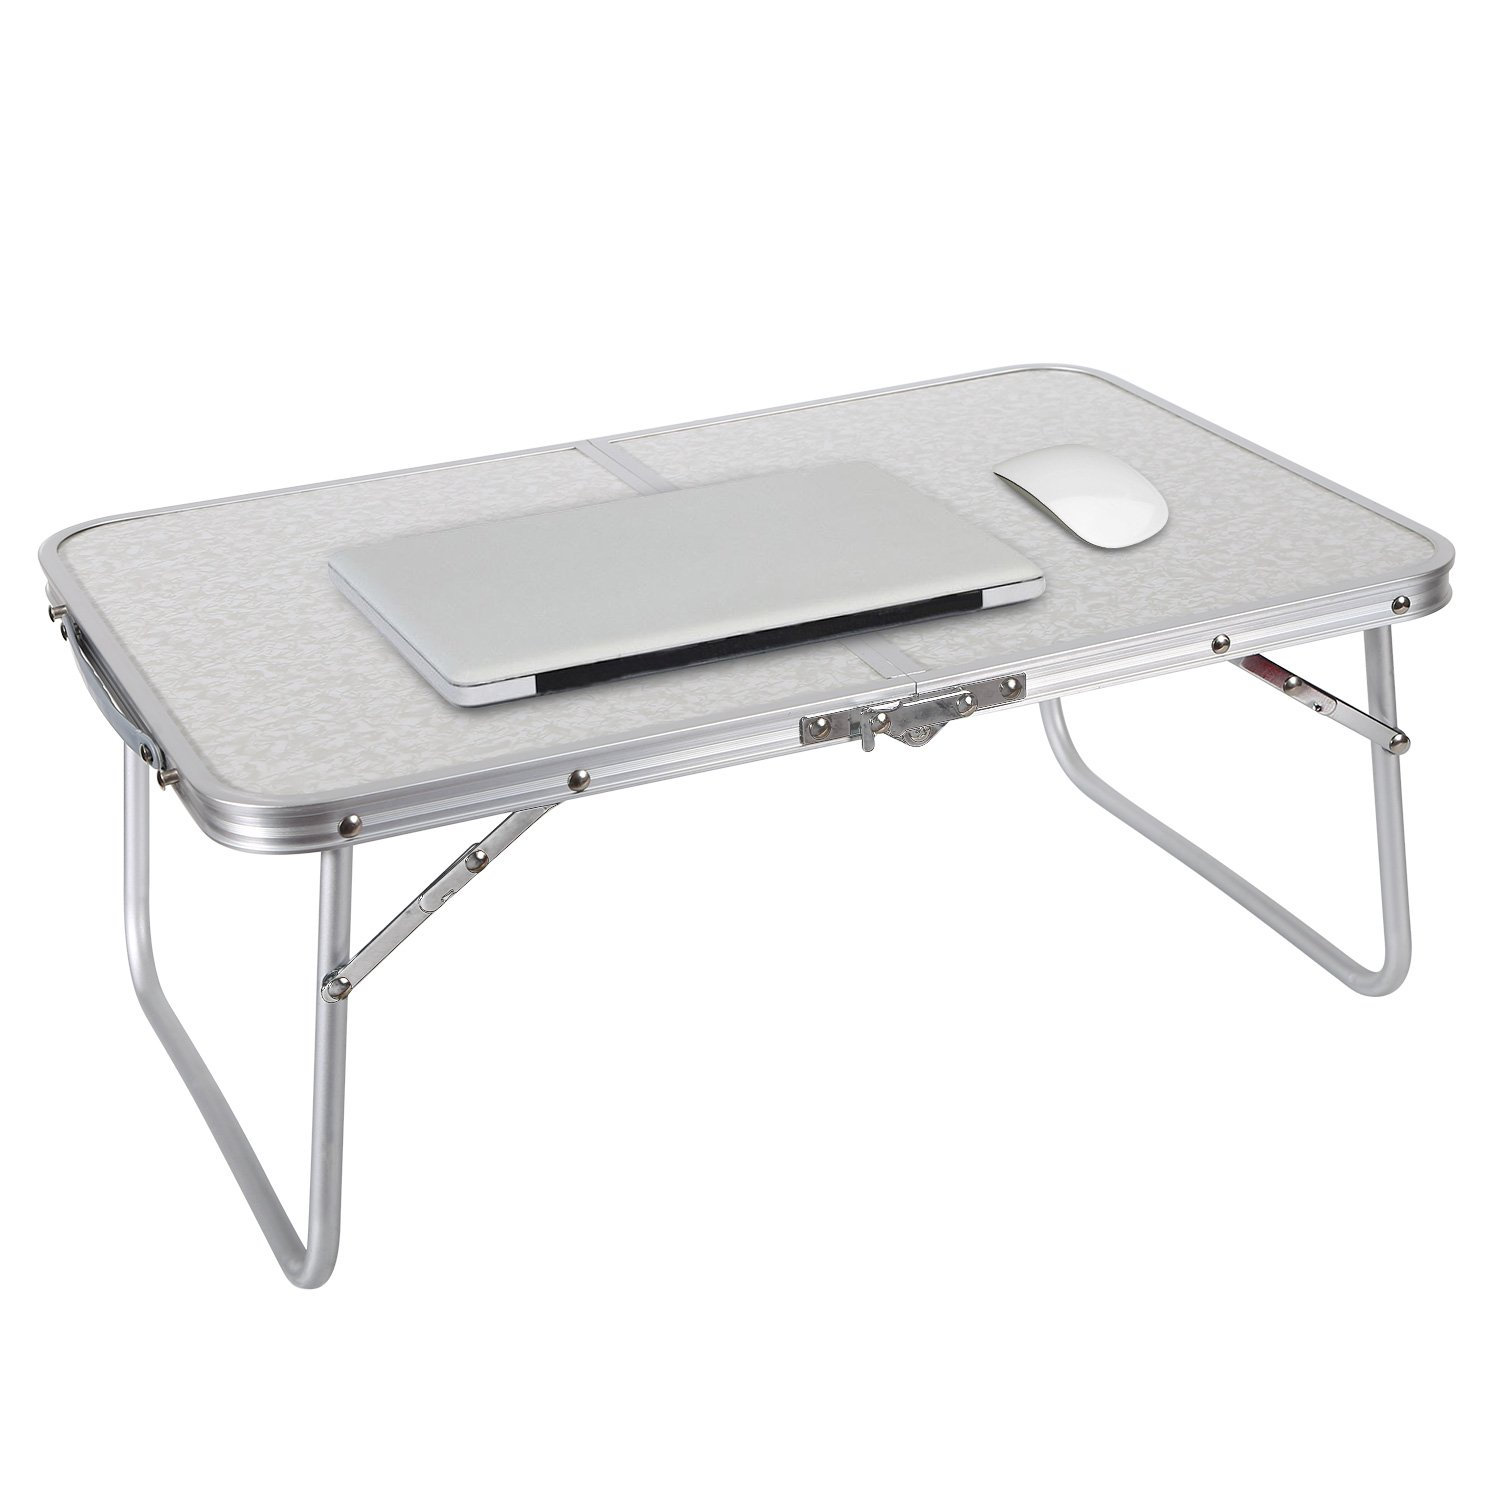 REDCAMP Foldable Mini Laptop Table, Portable Desk for Bed, Folds in Half, Silver, L23.6'' x W15.7'' x H9.8''